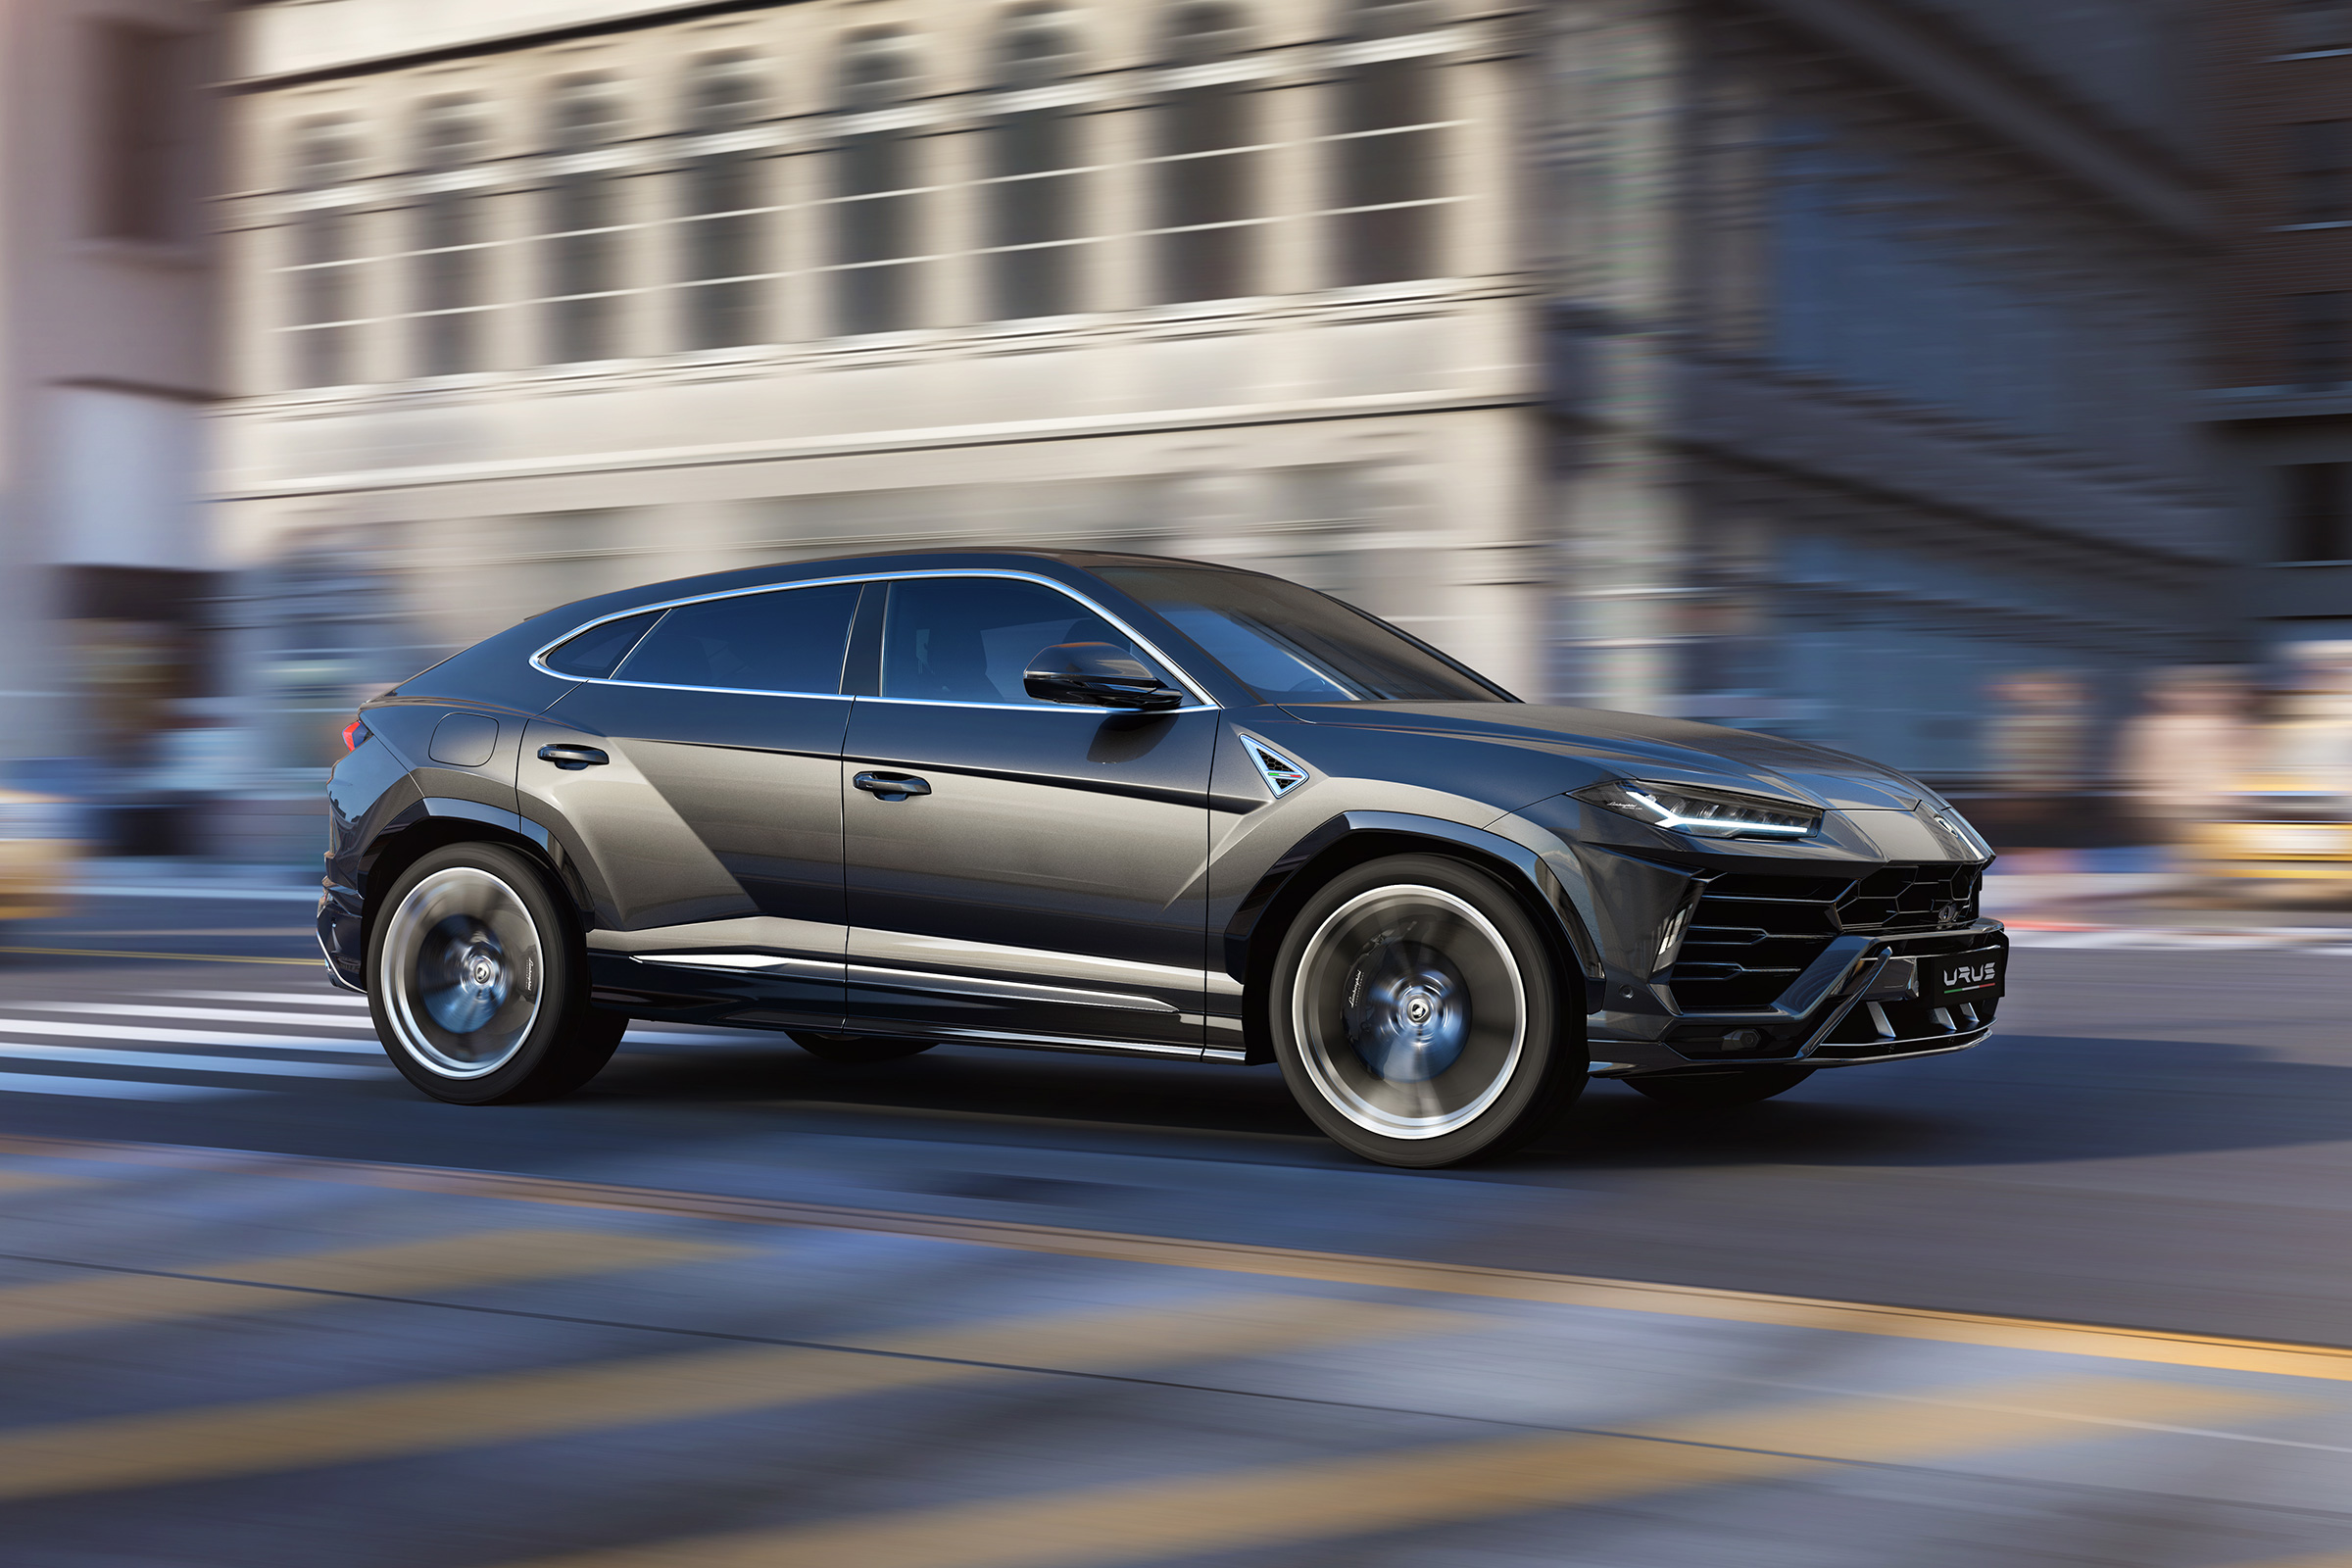 New Lamborghini Urus SUV revealed in full – due in 2018 | Evo